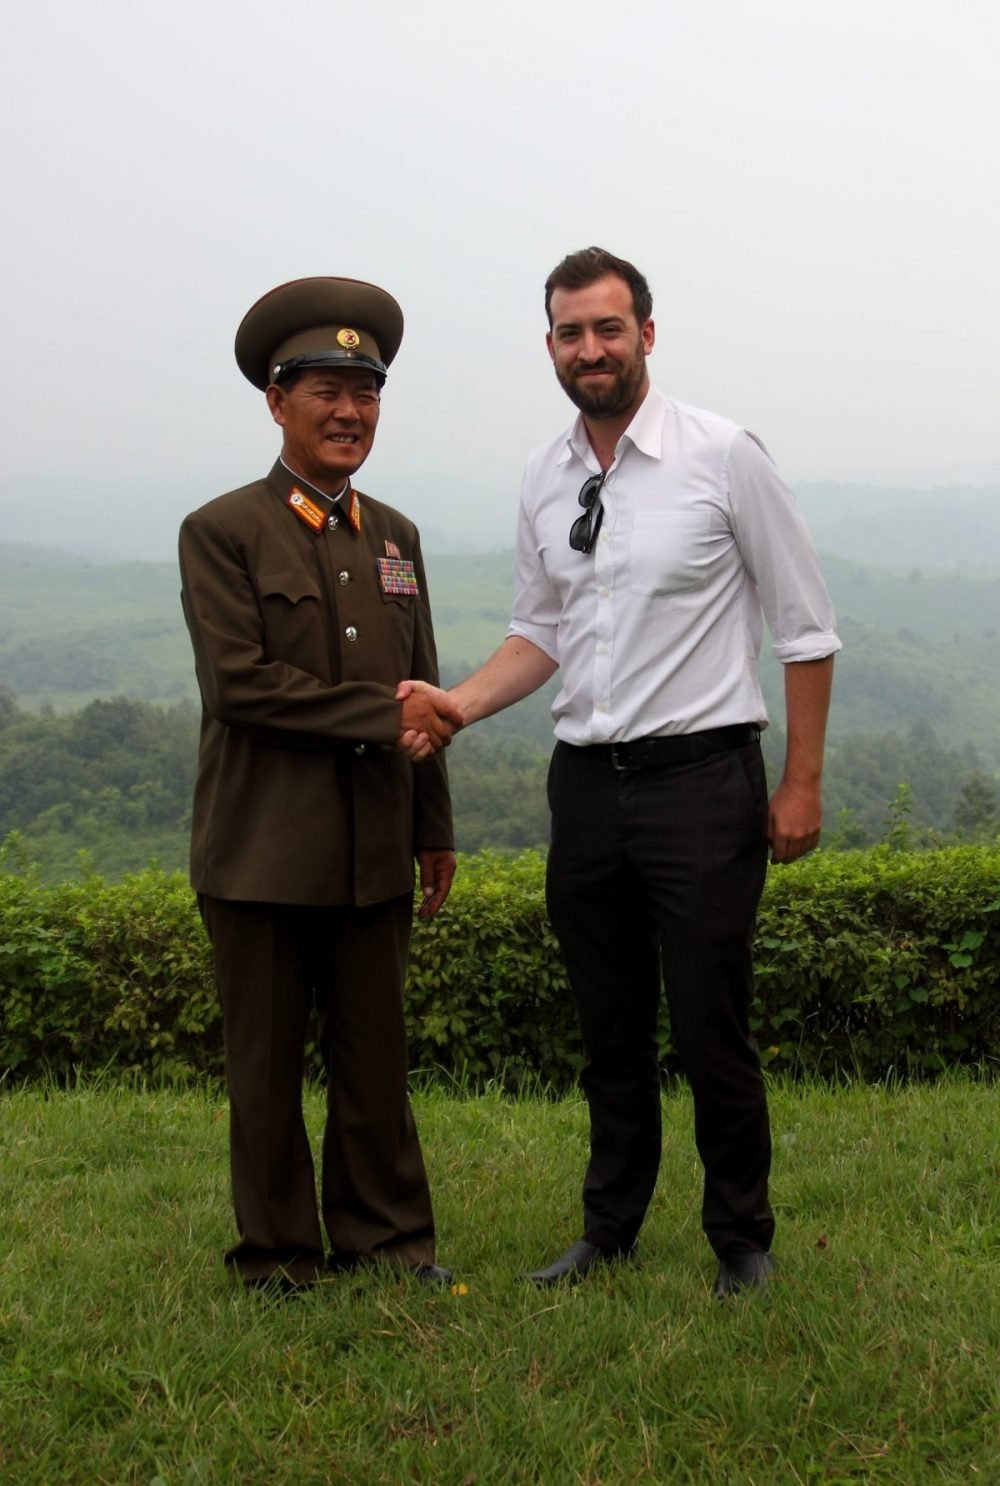 Rocky road travel founder Shane Horan at the DMZ